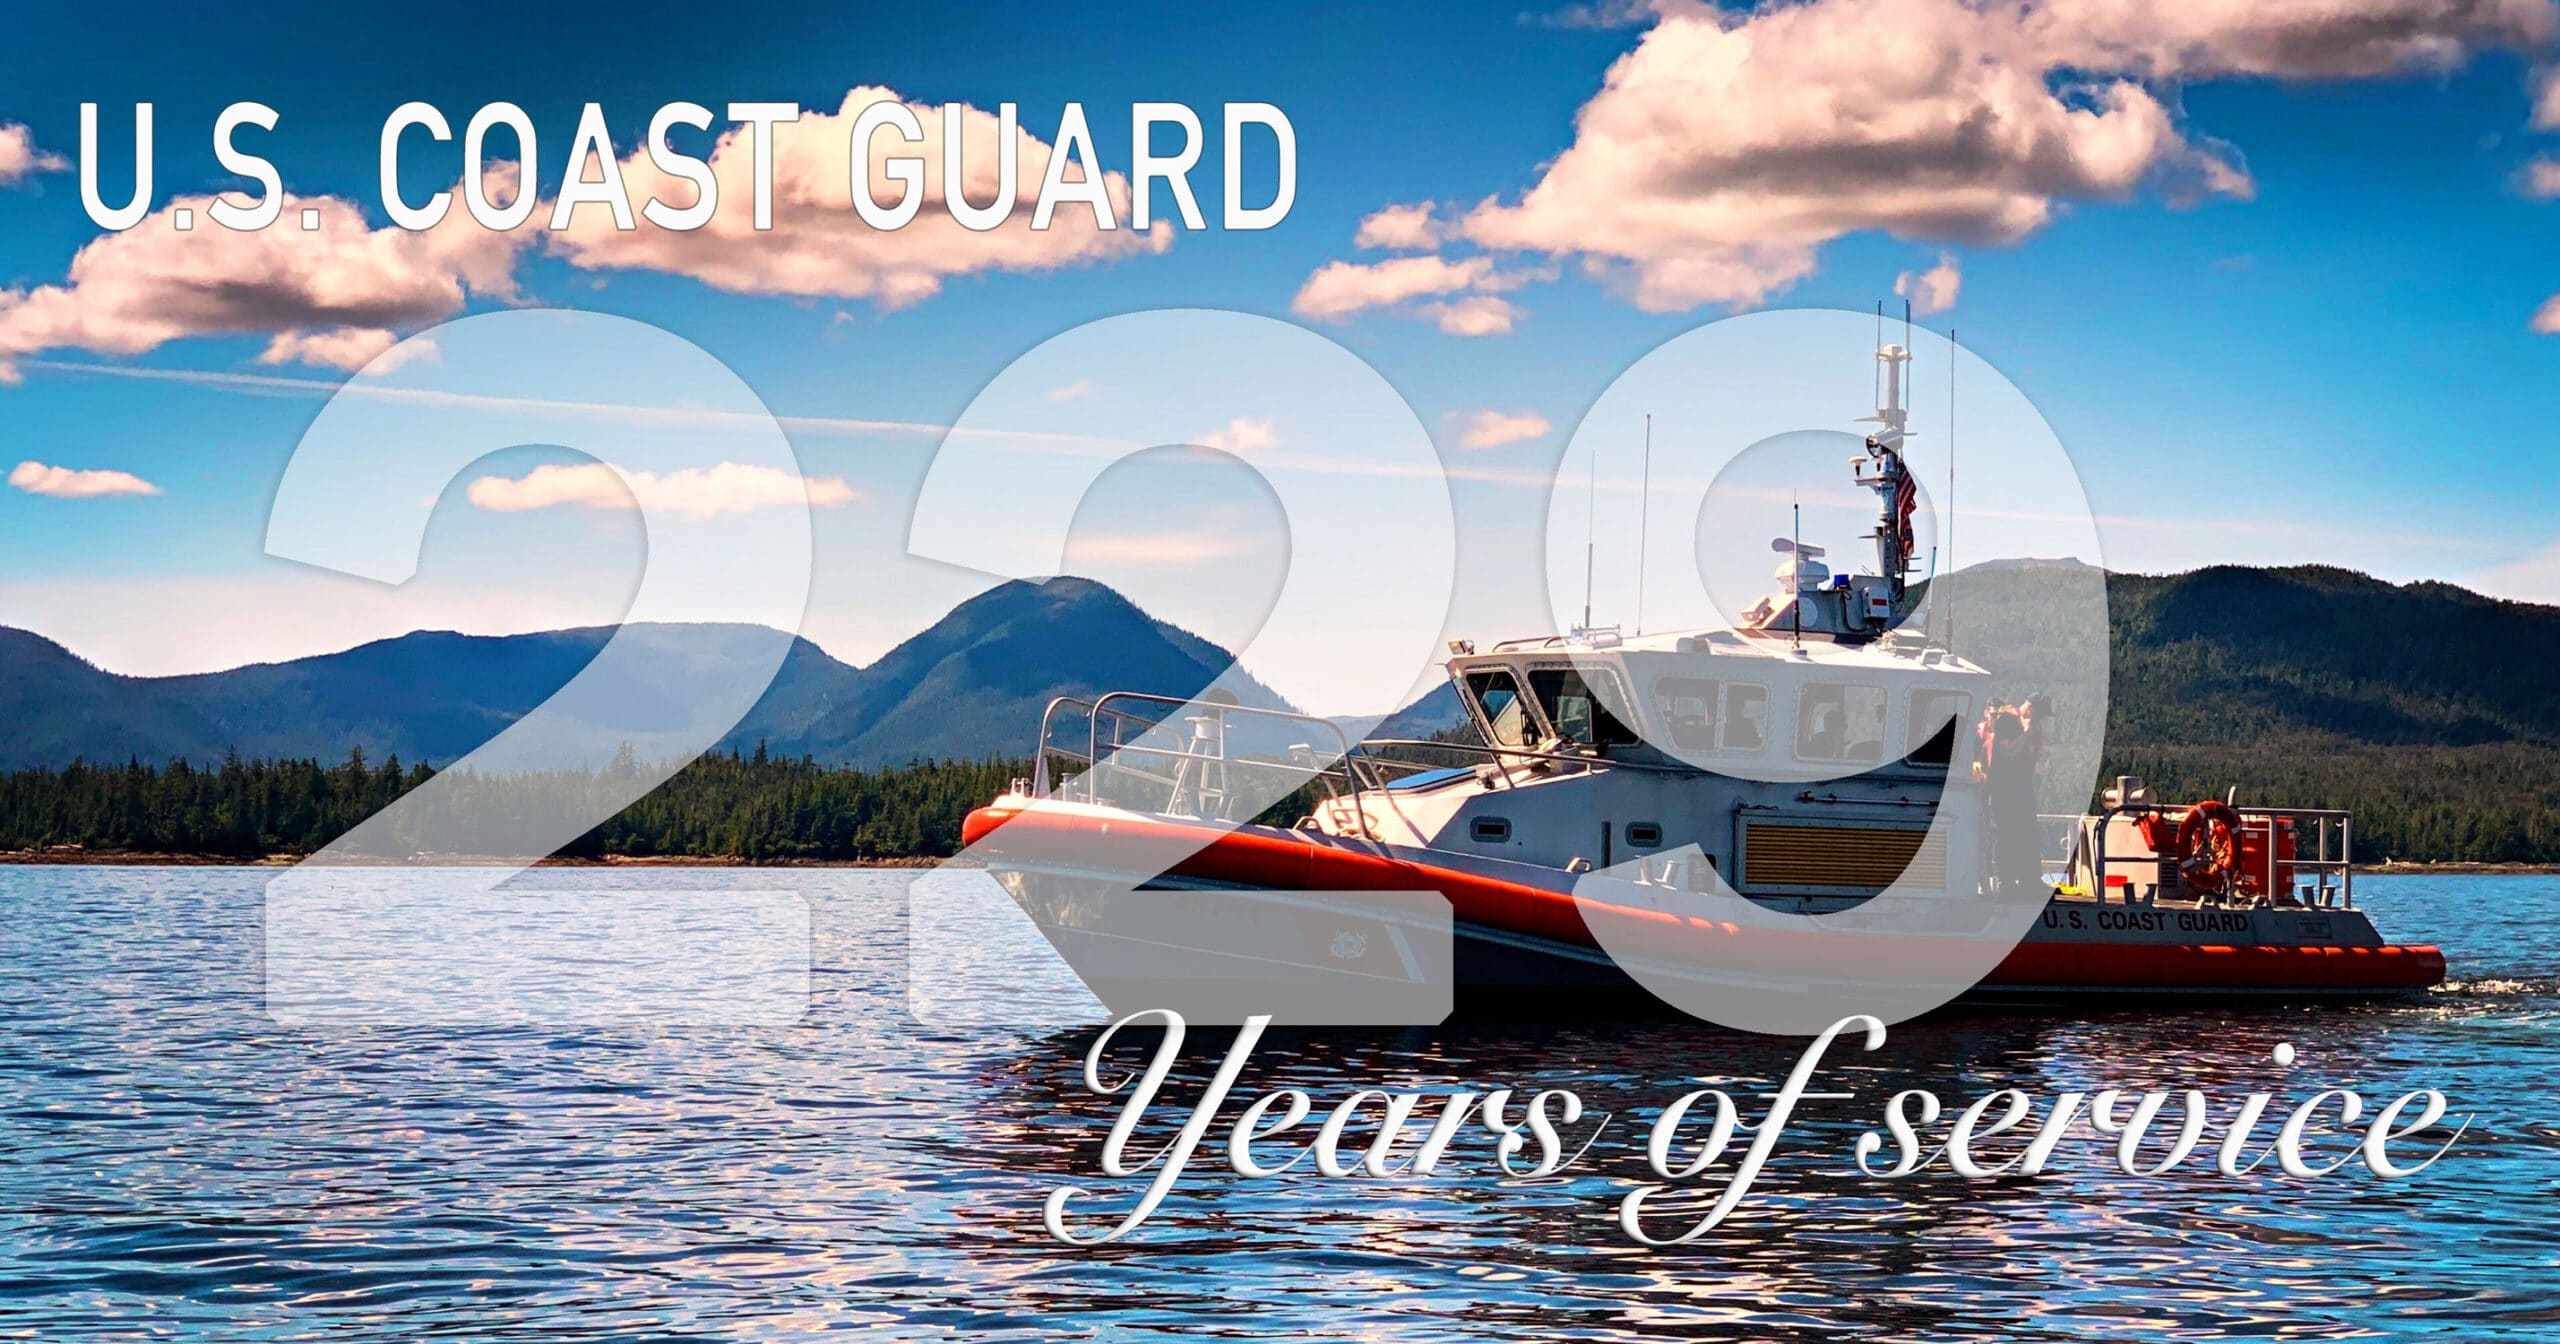 Coast Guard - 229 Years of Service